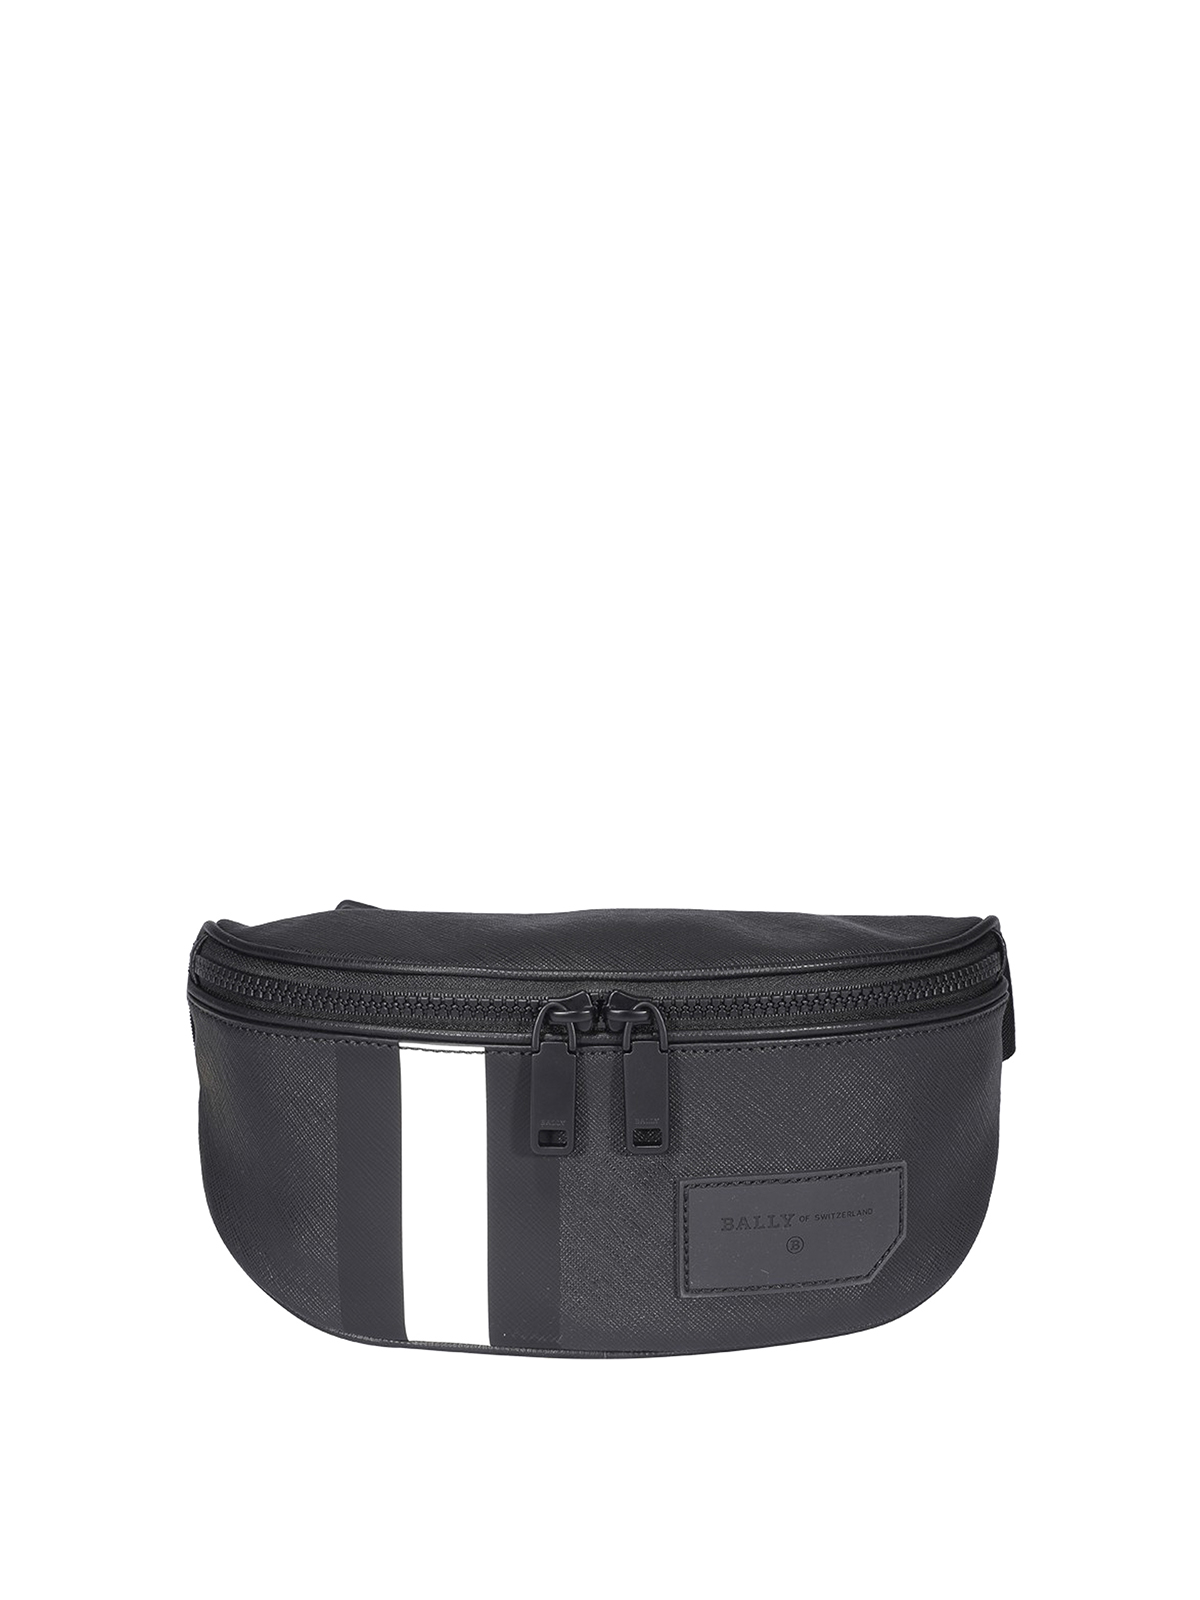 Bally Sonni Belt Bag In Black